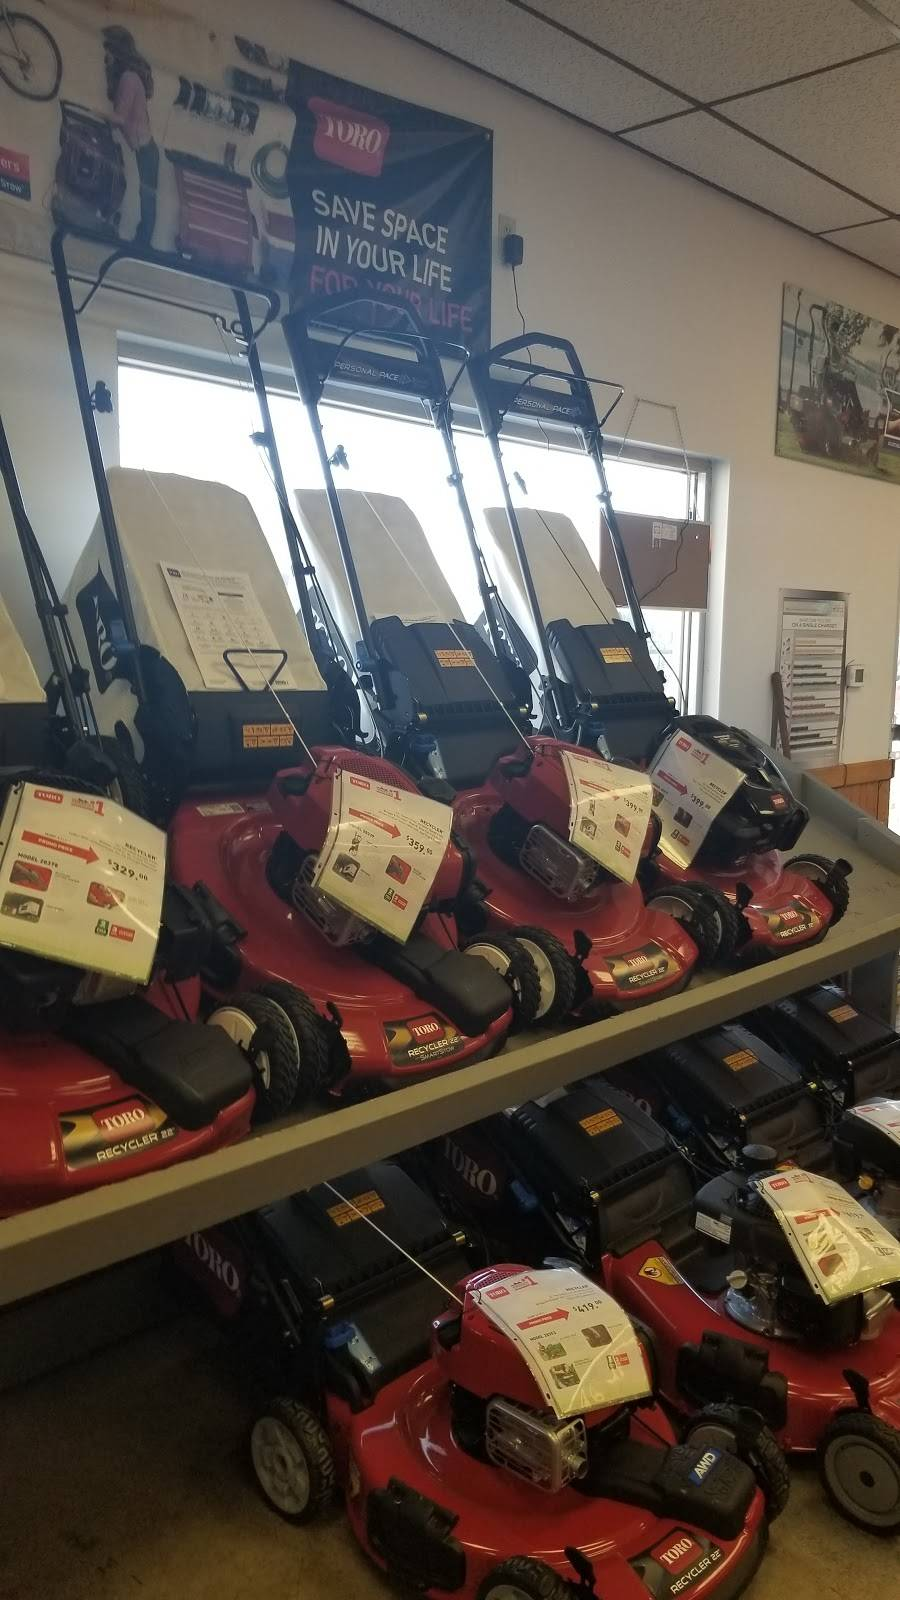 Kuhlmans Lawnmowers - Sales & Service - hardware store  | Photo 4 of 7 | Address: 1233 State Ave, Coraopolis, PA 15108, USA | Phone: (412) 264-4470